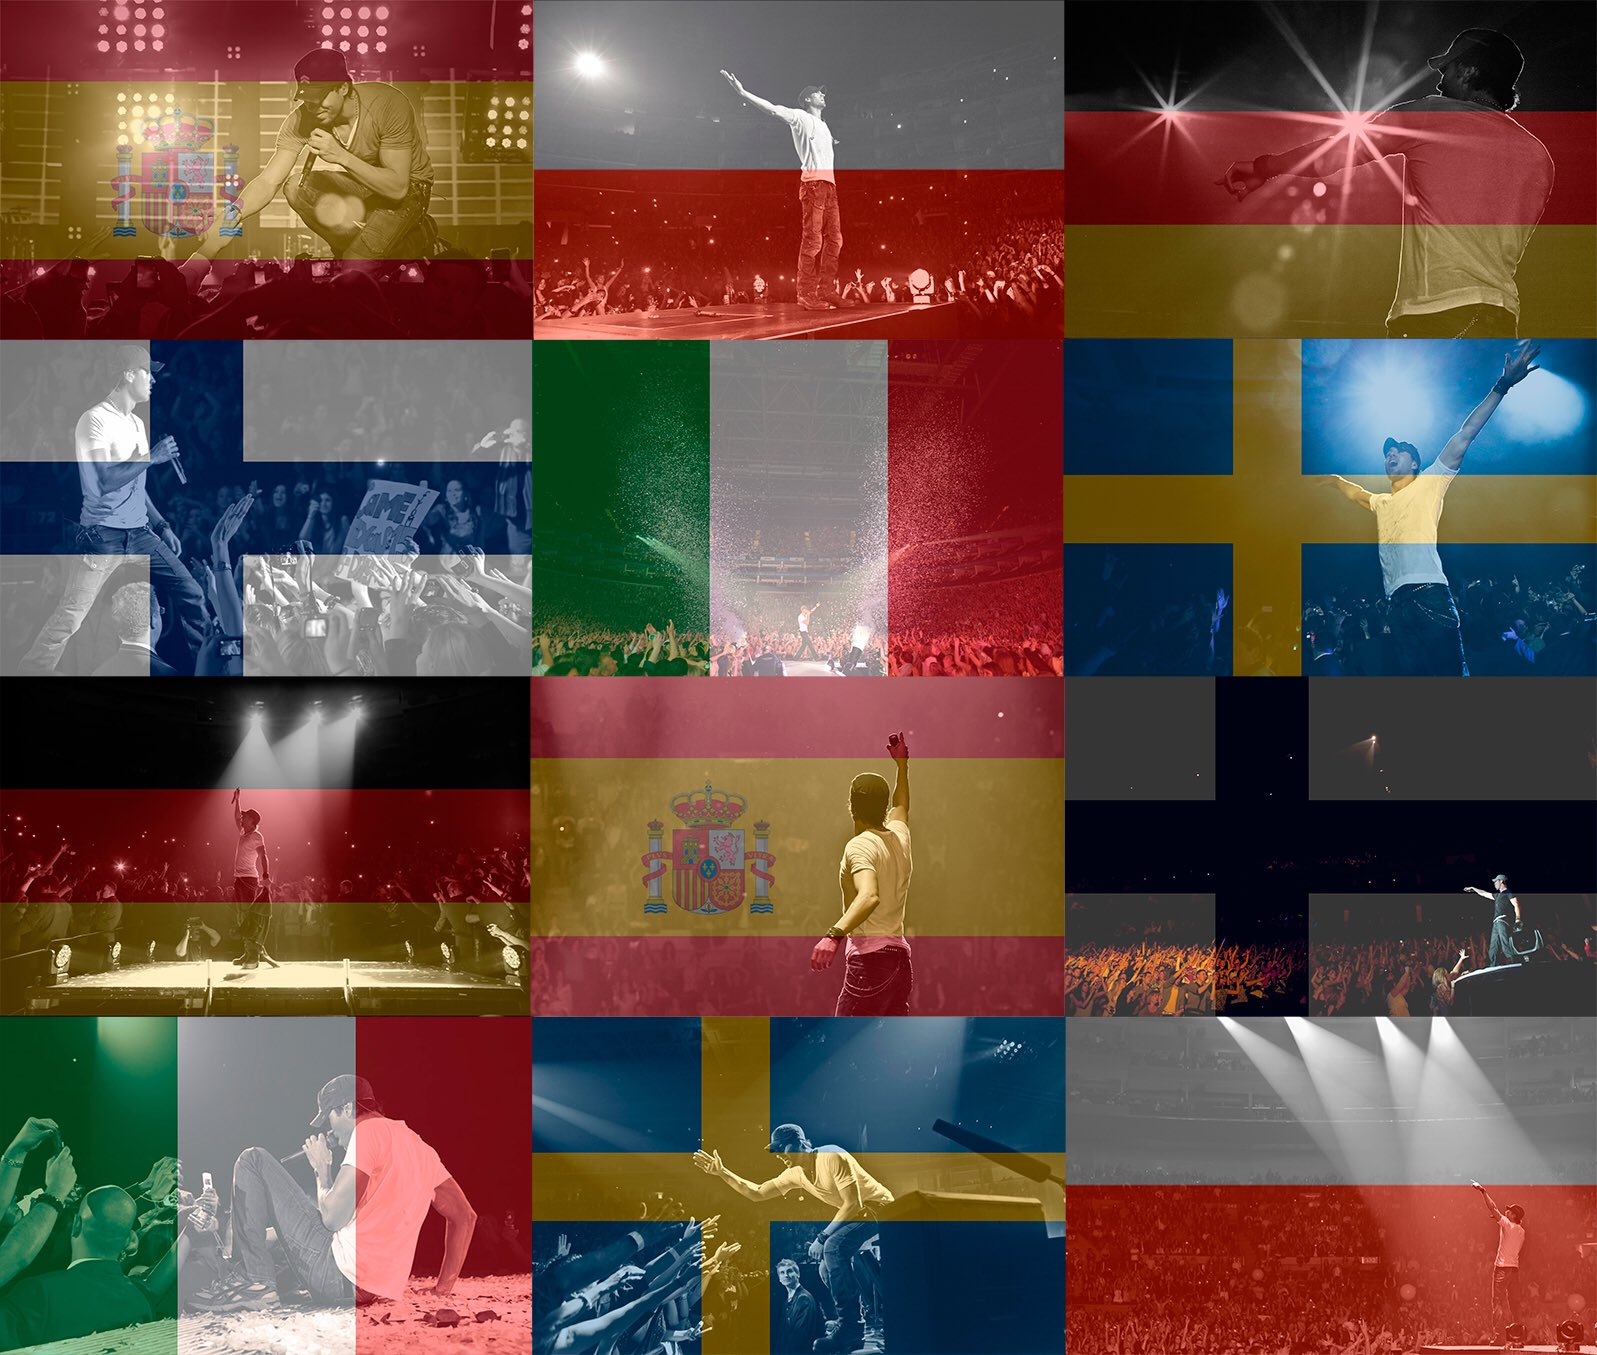 can't wait to get back out to Europe to see you guys... #poland #italy #germany #sweden #finland #spain https://t.co/2L33PnwZsG